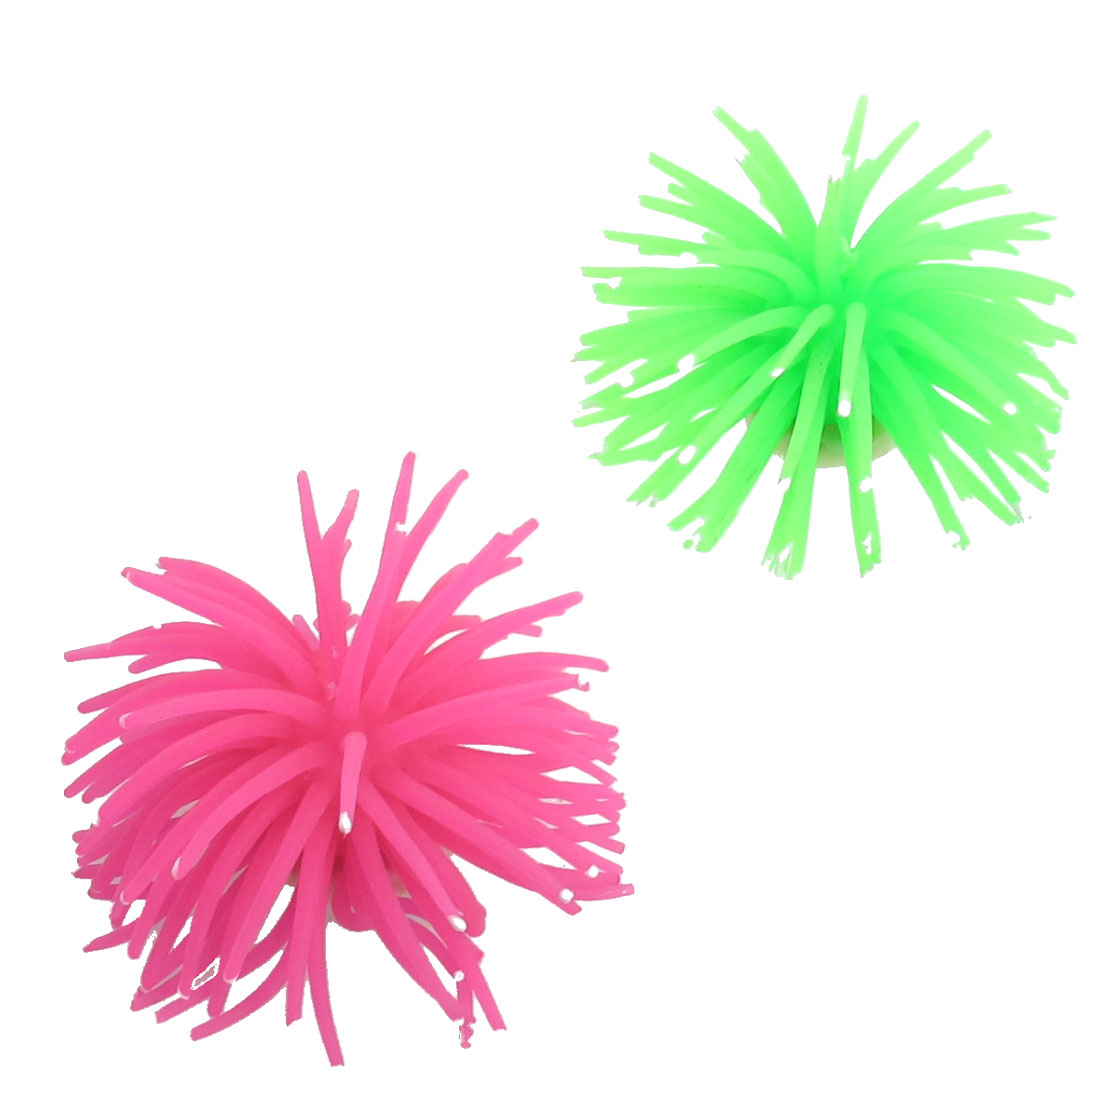 2 Pcs White Dot Green Fuchsia Soft Silicone Corals Ornament for Fish Tank